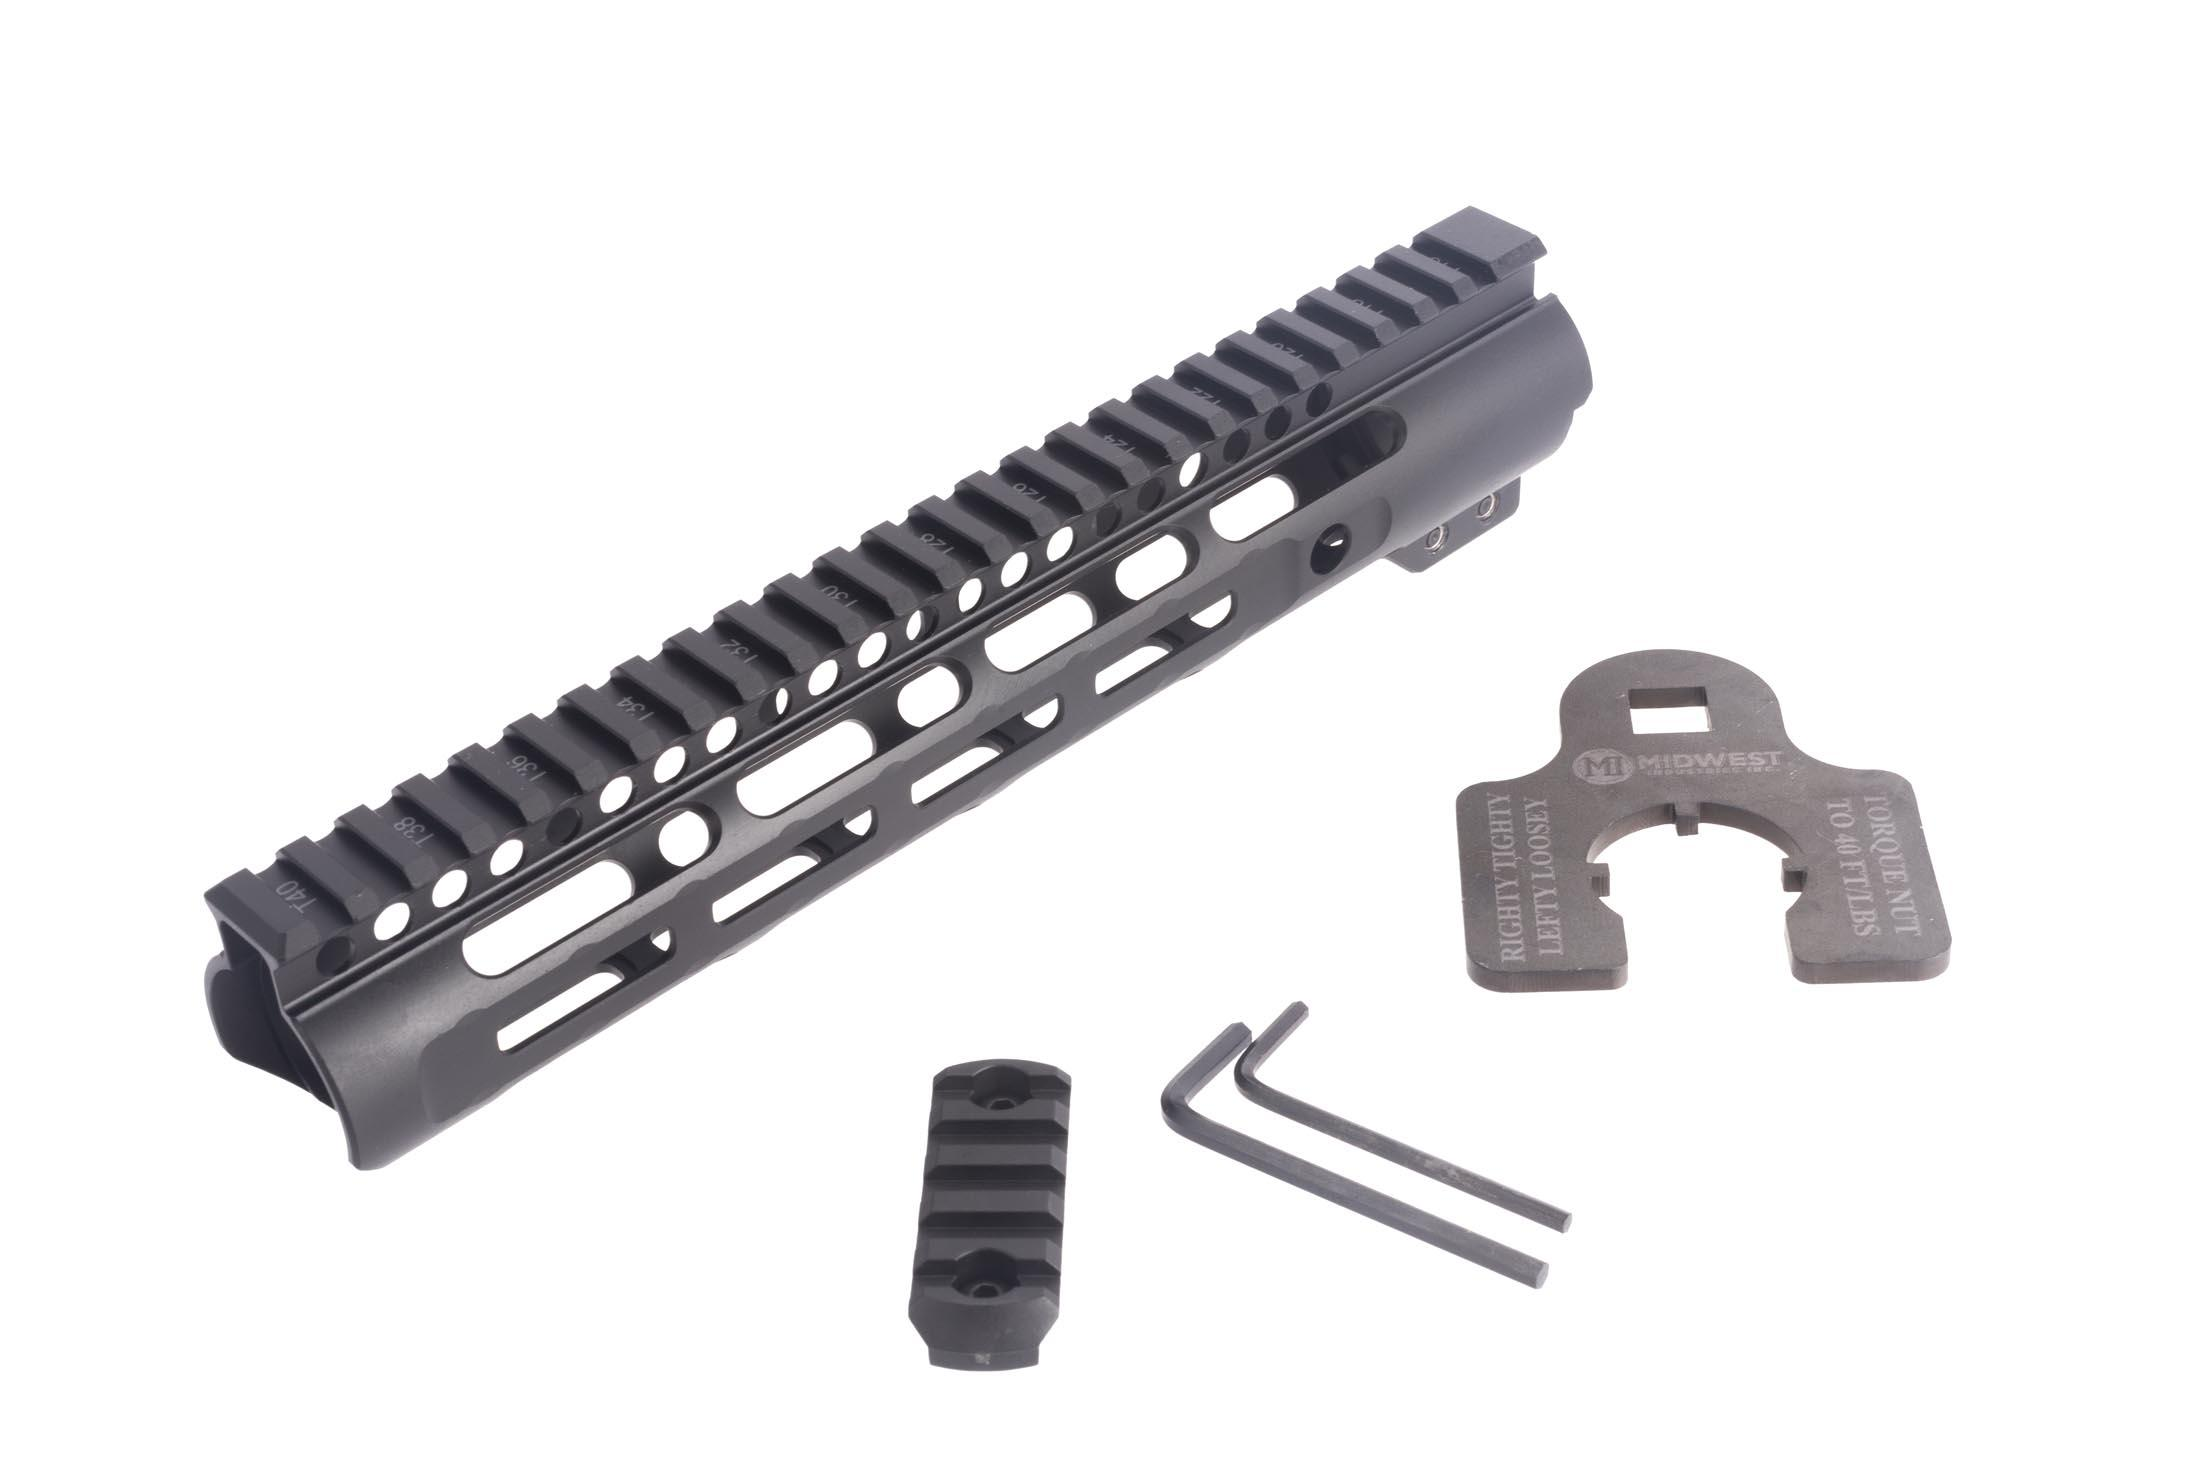 Midwest Industries Slim Line 10.25in free float M-LOK rail for the AR-15 includes a rail section and helpfully labeled barrel nut wrench.